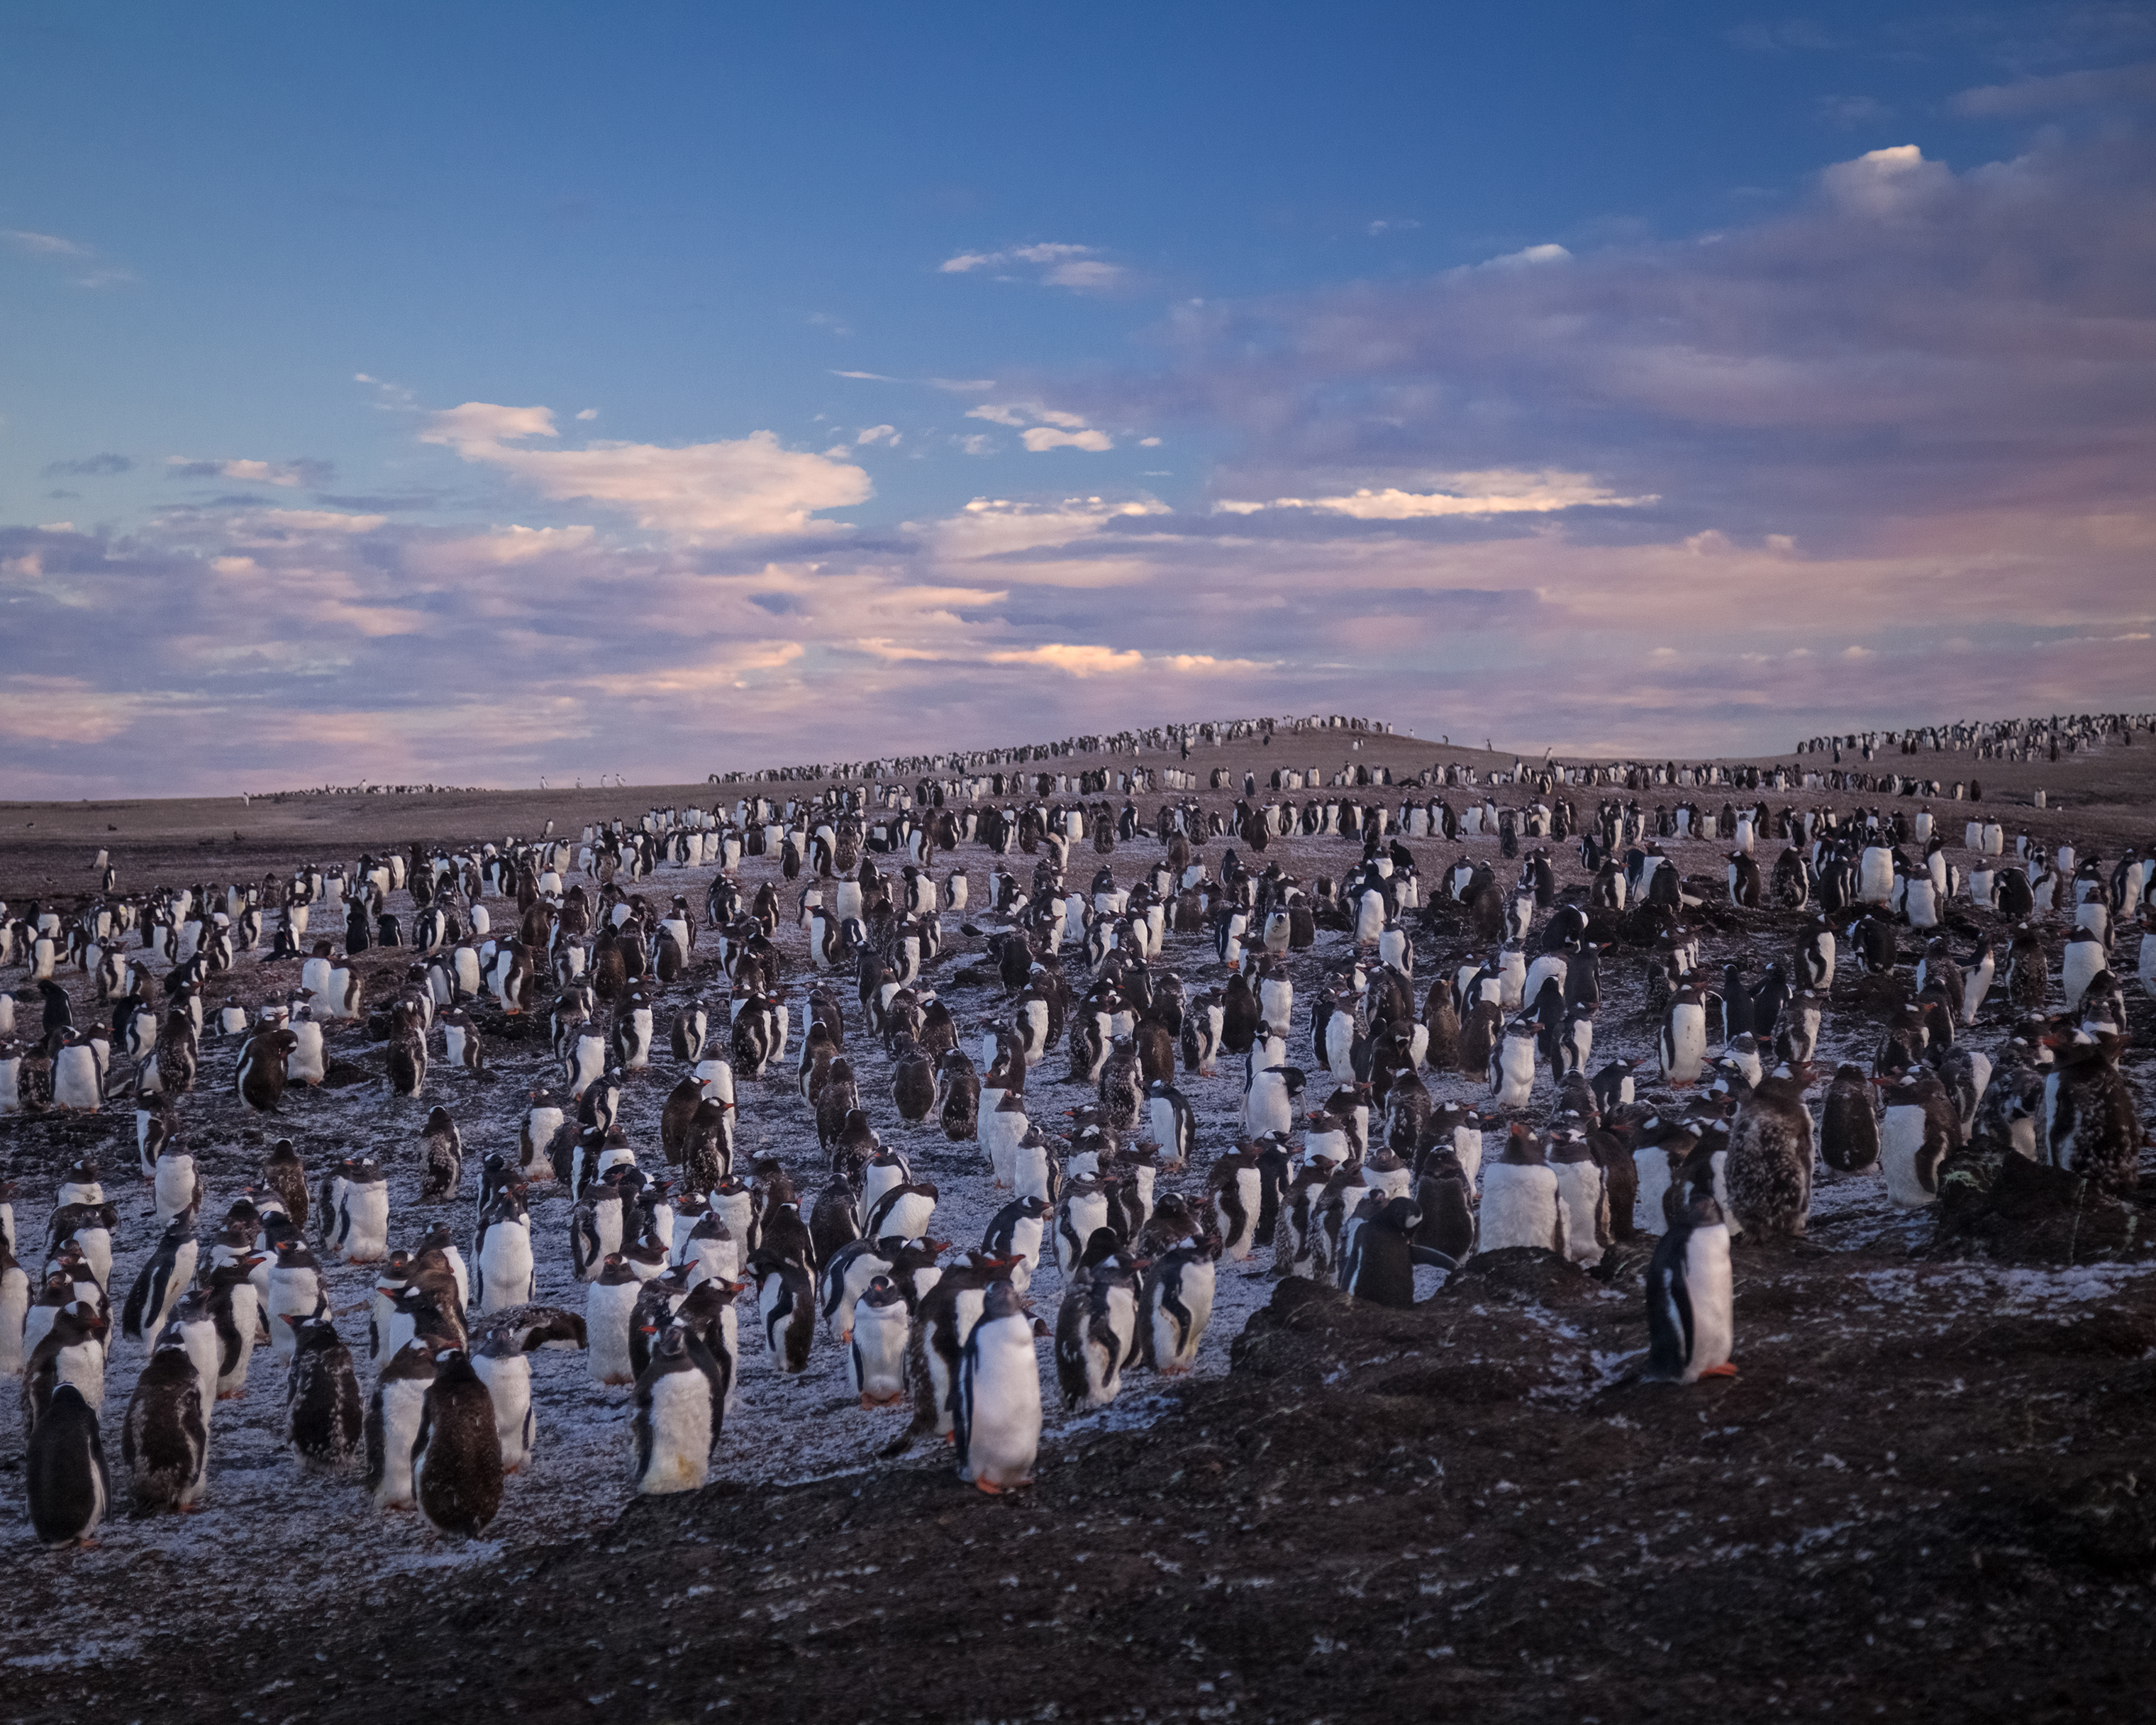 A gentoo penguin colony greets the sunrise at Saunders Island, in the Sub-Antarctic Falkland Islands.